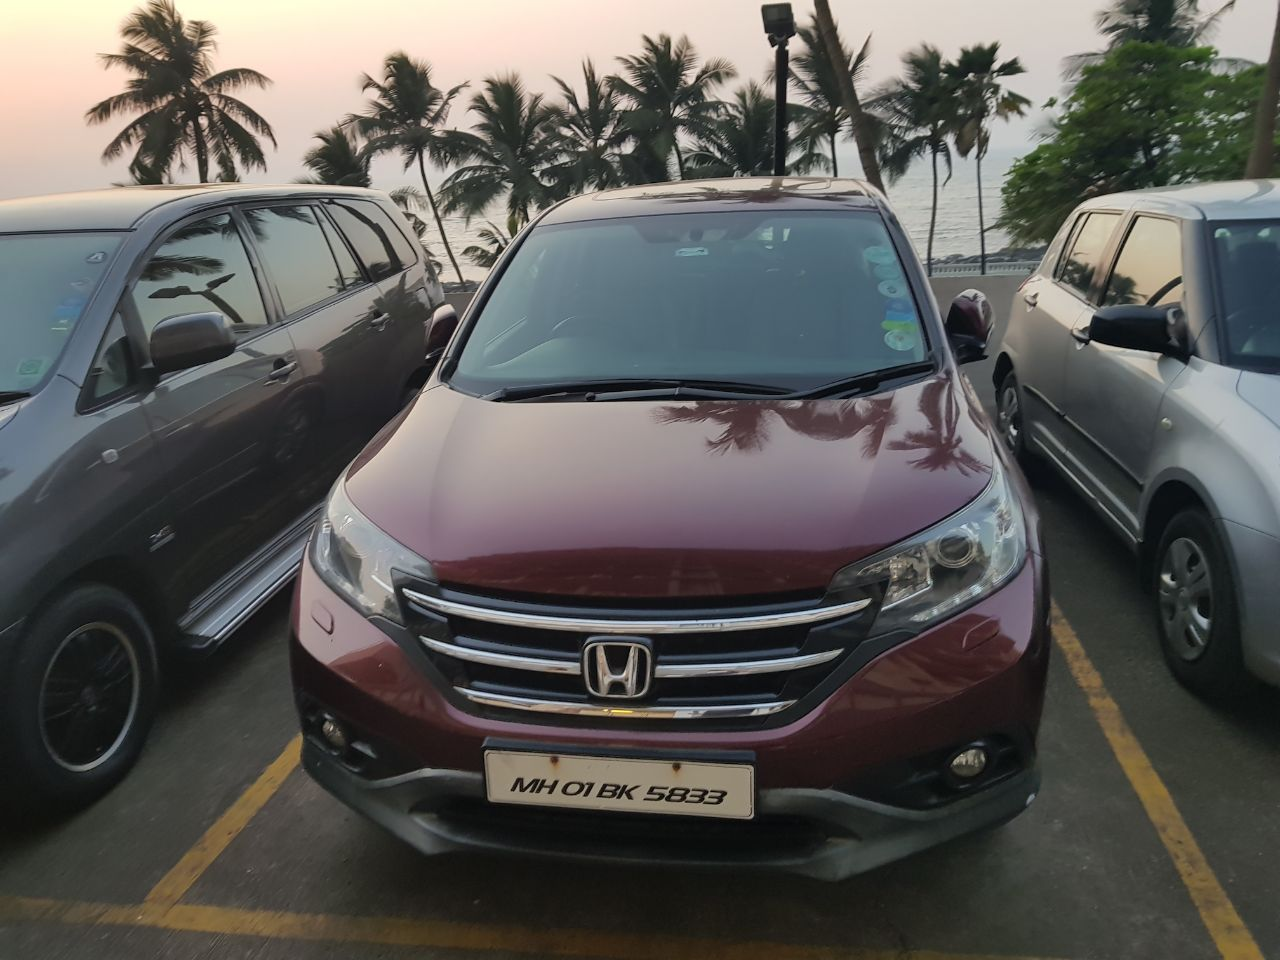 Honda CRv | Rs 22.29 Lakhs - Rs 26.36 Lakhs (Ex-Showroom - Delhi) The model seized by ED is the outgoing model of CR-V 3rd generation which is out of production now. The latest edition of the model packs 2354cc 4-cylinder engine which delivers 190 ps power and 226 Nm torque.